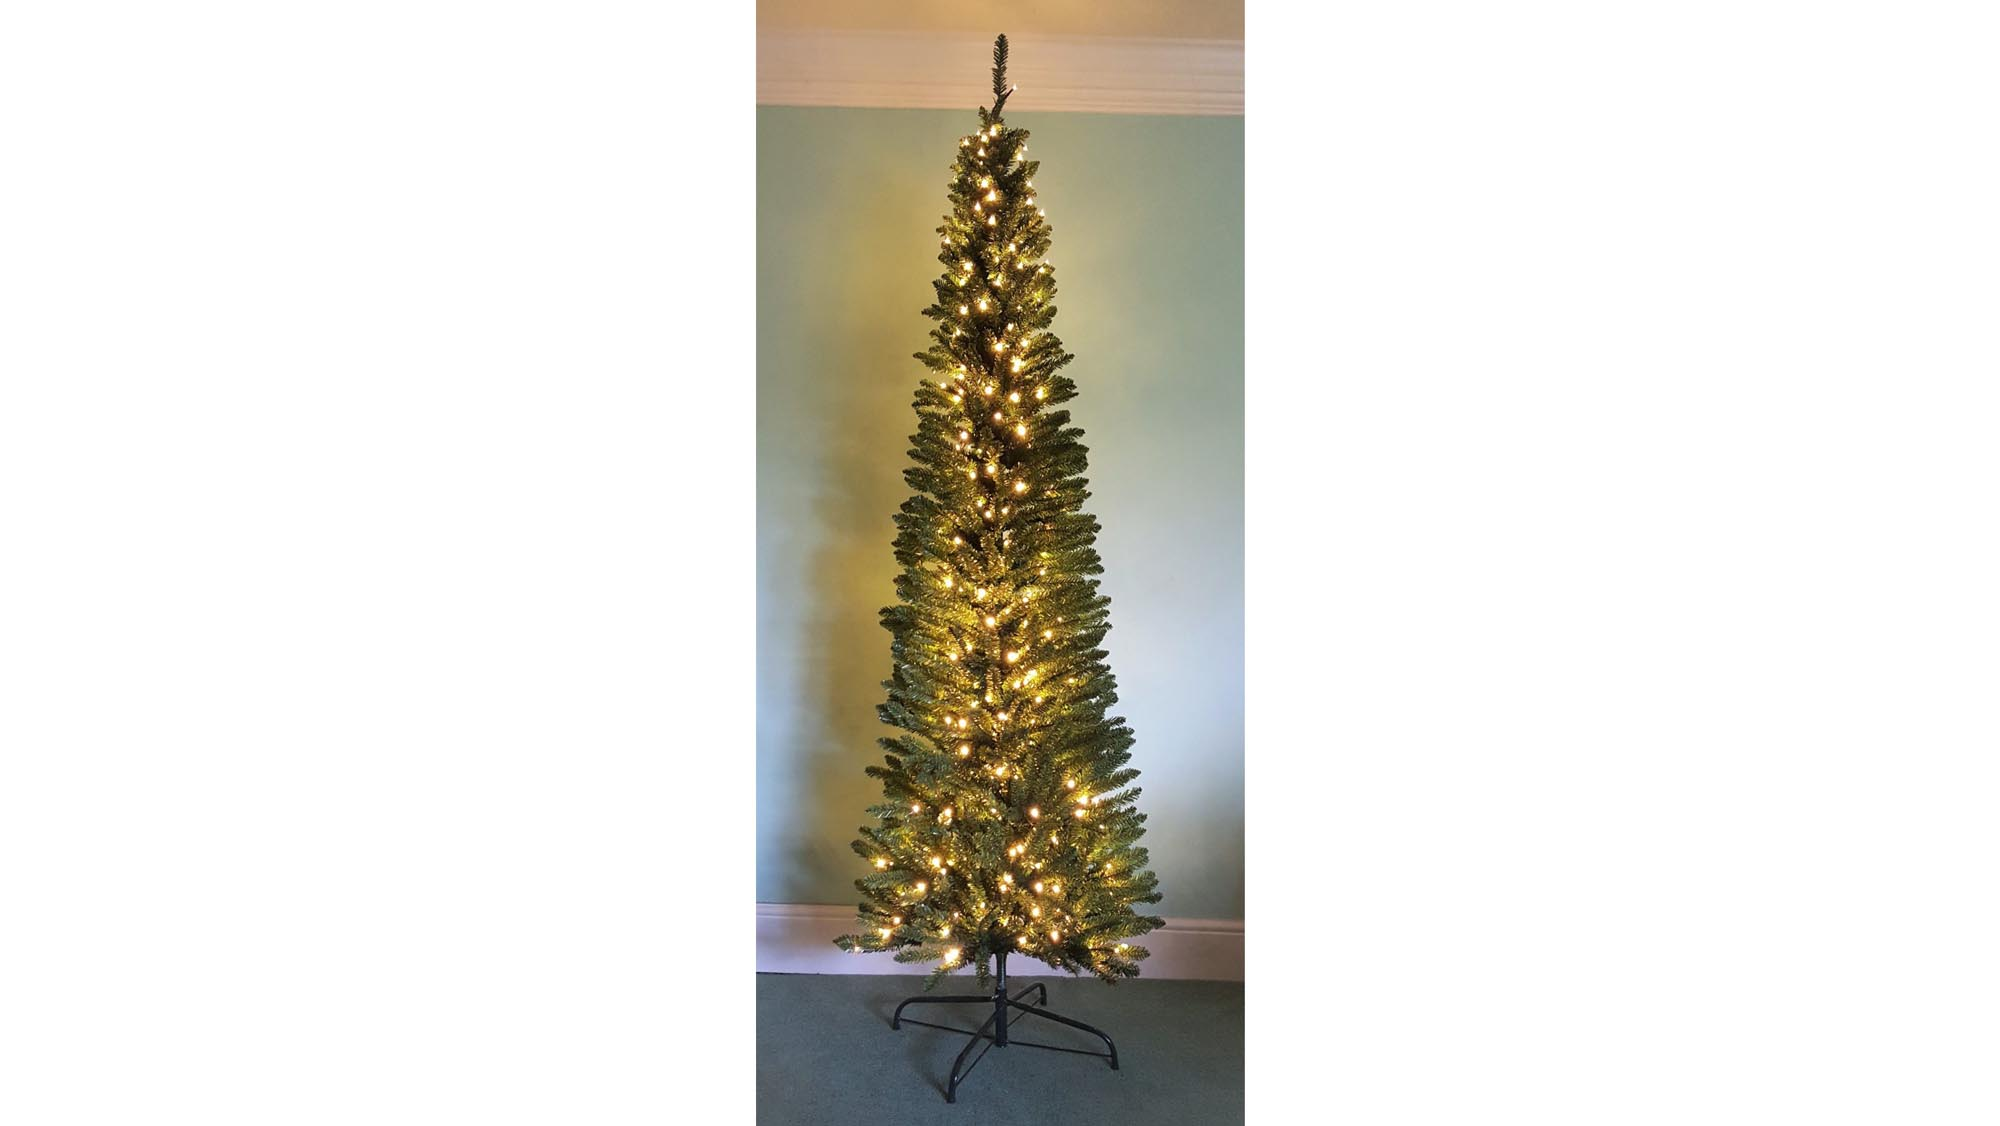 Best artificial Christmas tree 2018: Have a hassle-free Xmas with ...